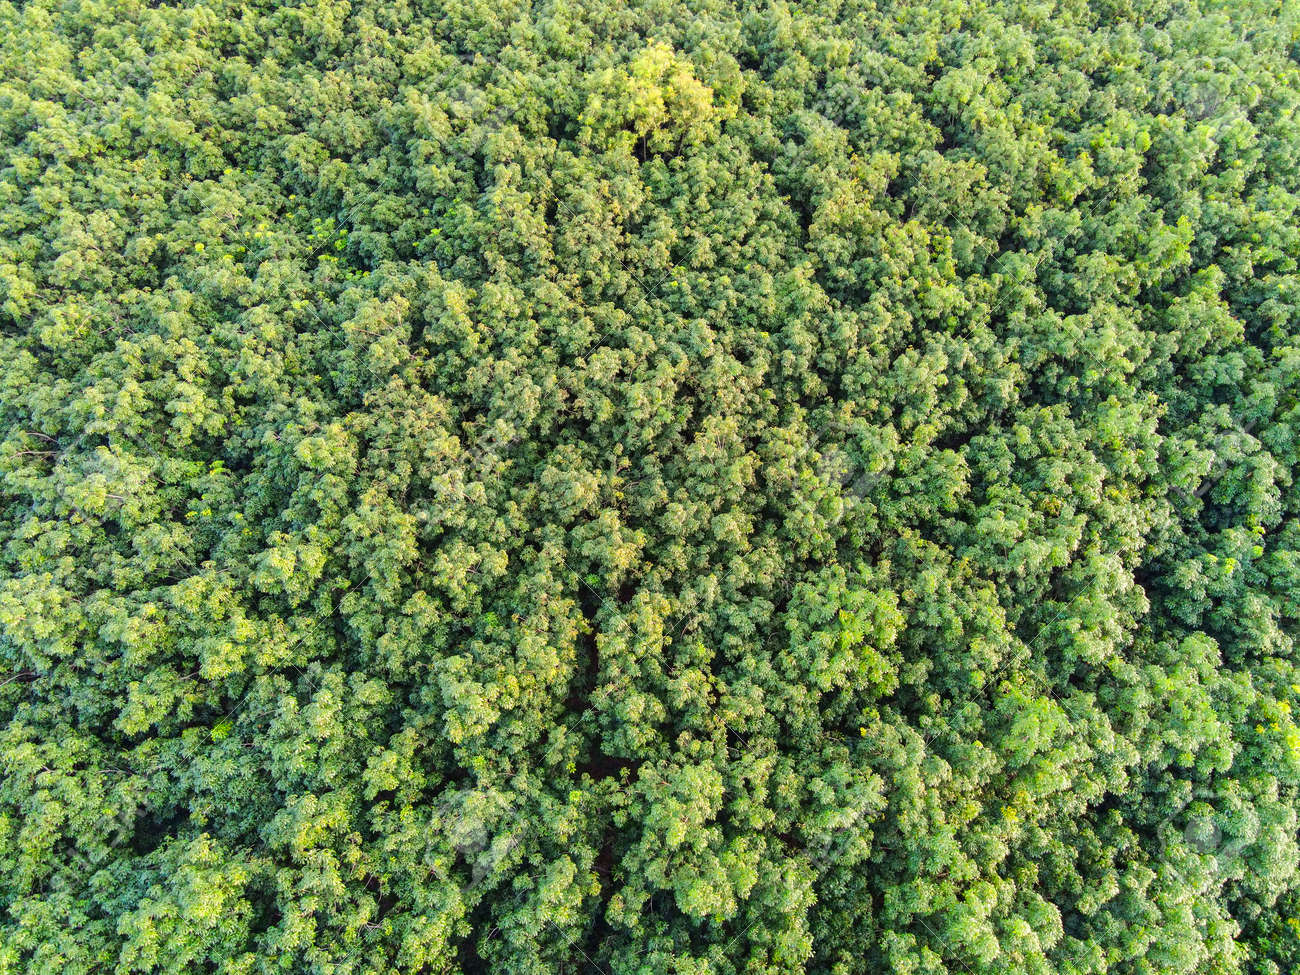 Aerial view forest tree environment forest nature background, Texture of green tree top view forest from above - 173248645